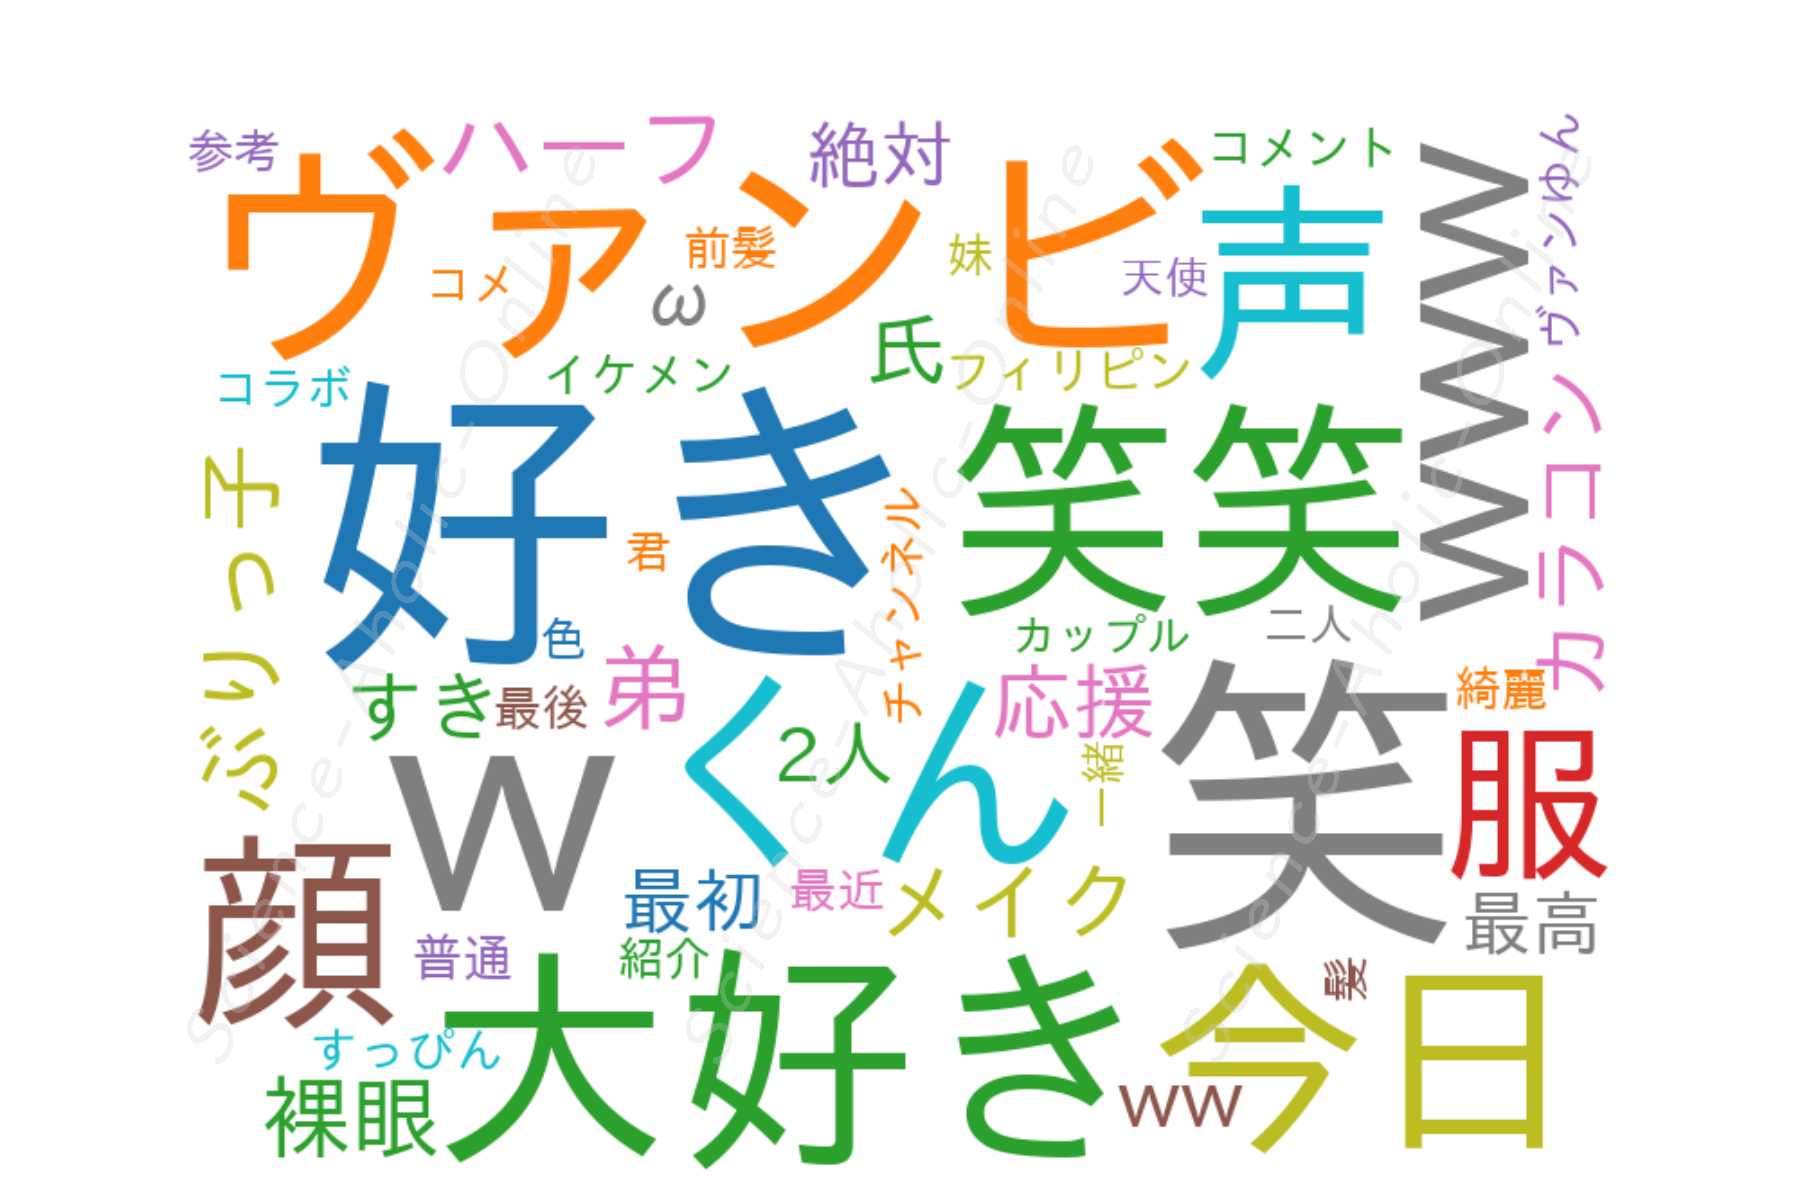 https://science-aholic-online.com/wp-content/uploads/2020/08/wordcloud_ゆんちゃんねる.png